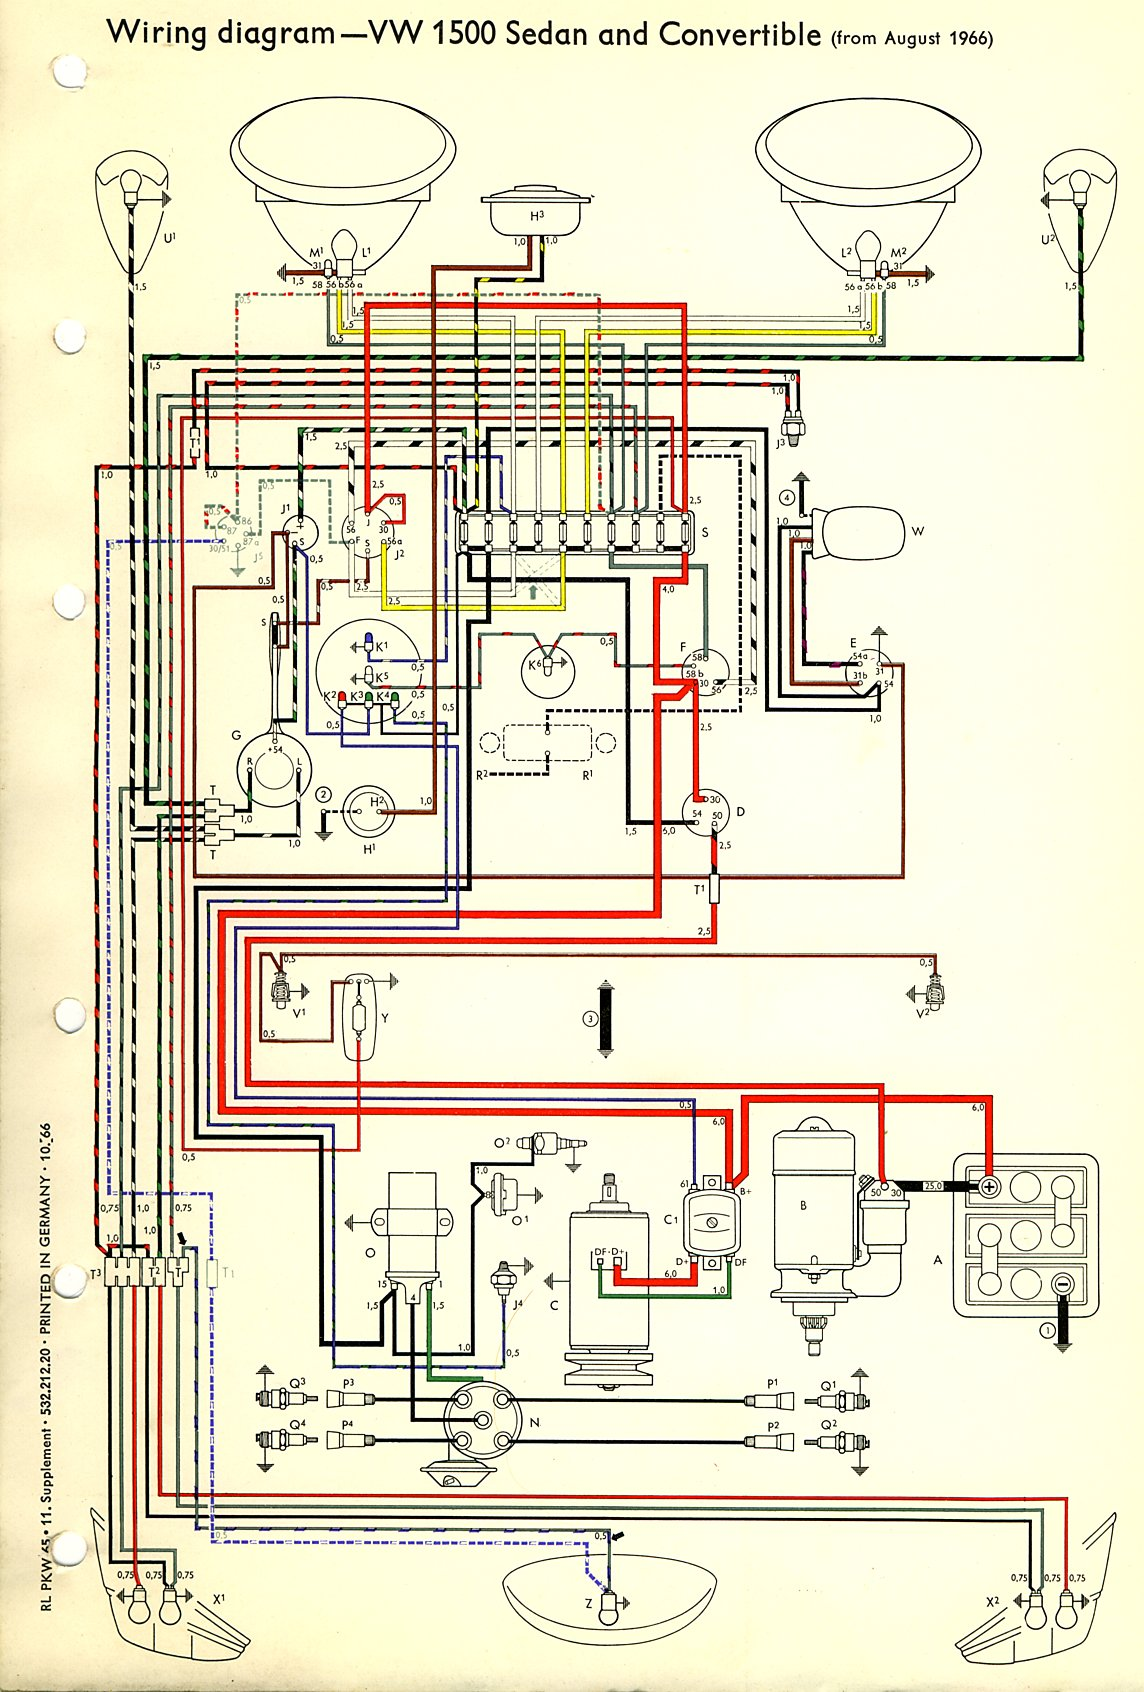 1972 vw bus wiring diagram phase change oxygen volkswagen diagrams schematic thesamba com type 1